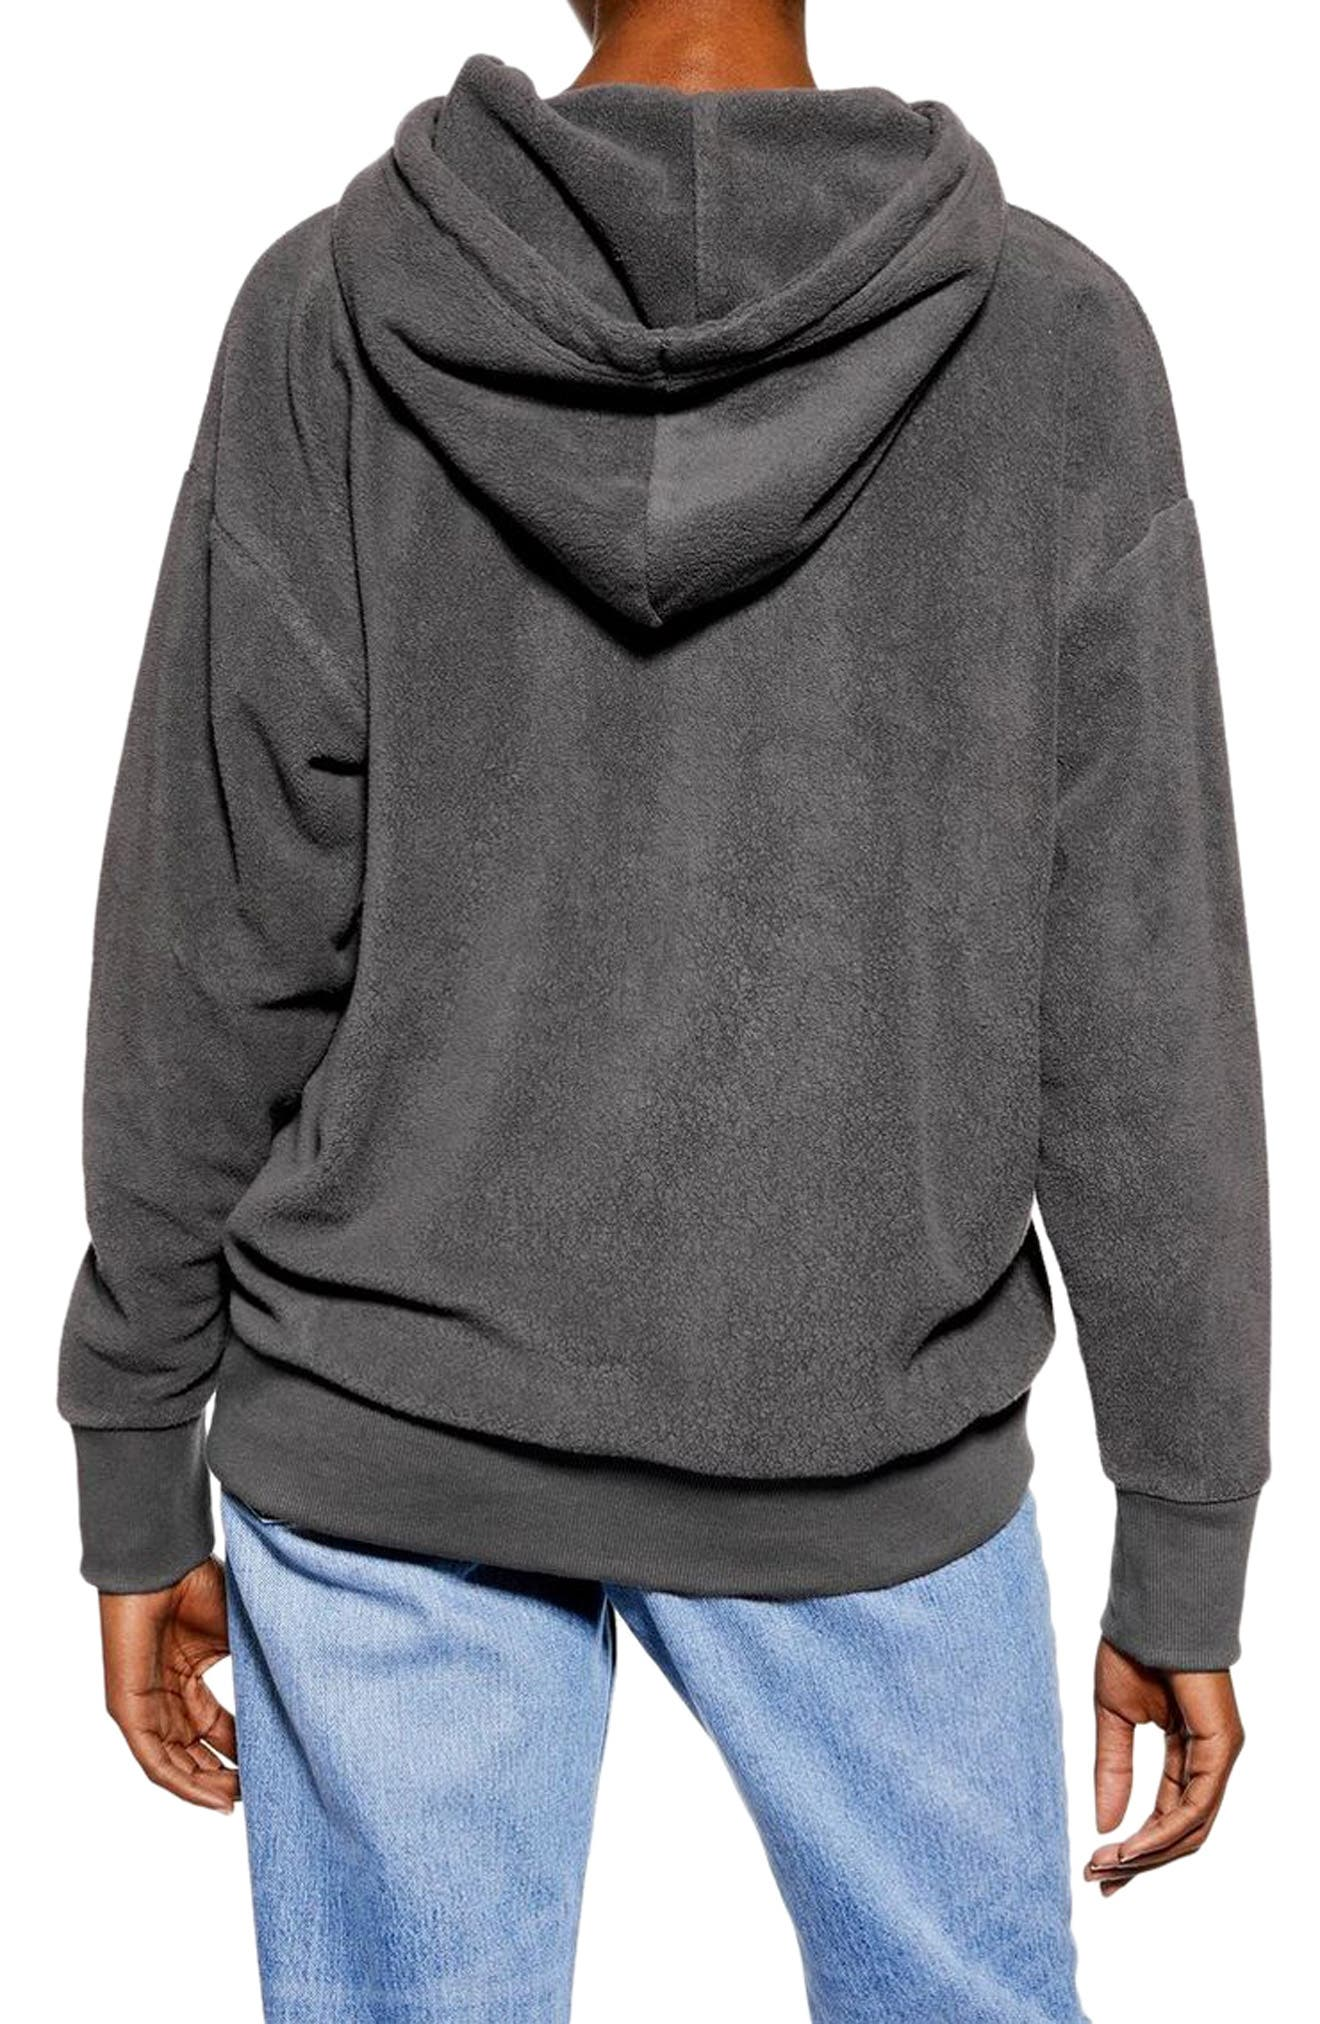 Bobbly Textured Hoodie,                             Alternate thumbnail 2, color,                             CHARCOAL